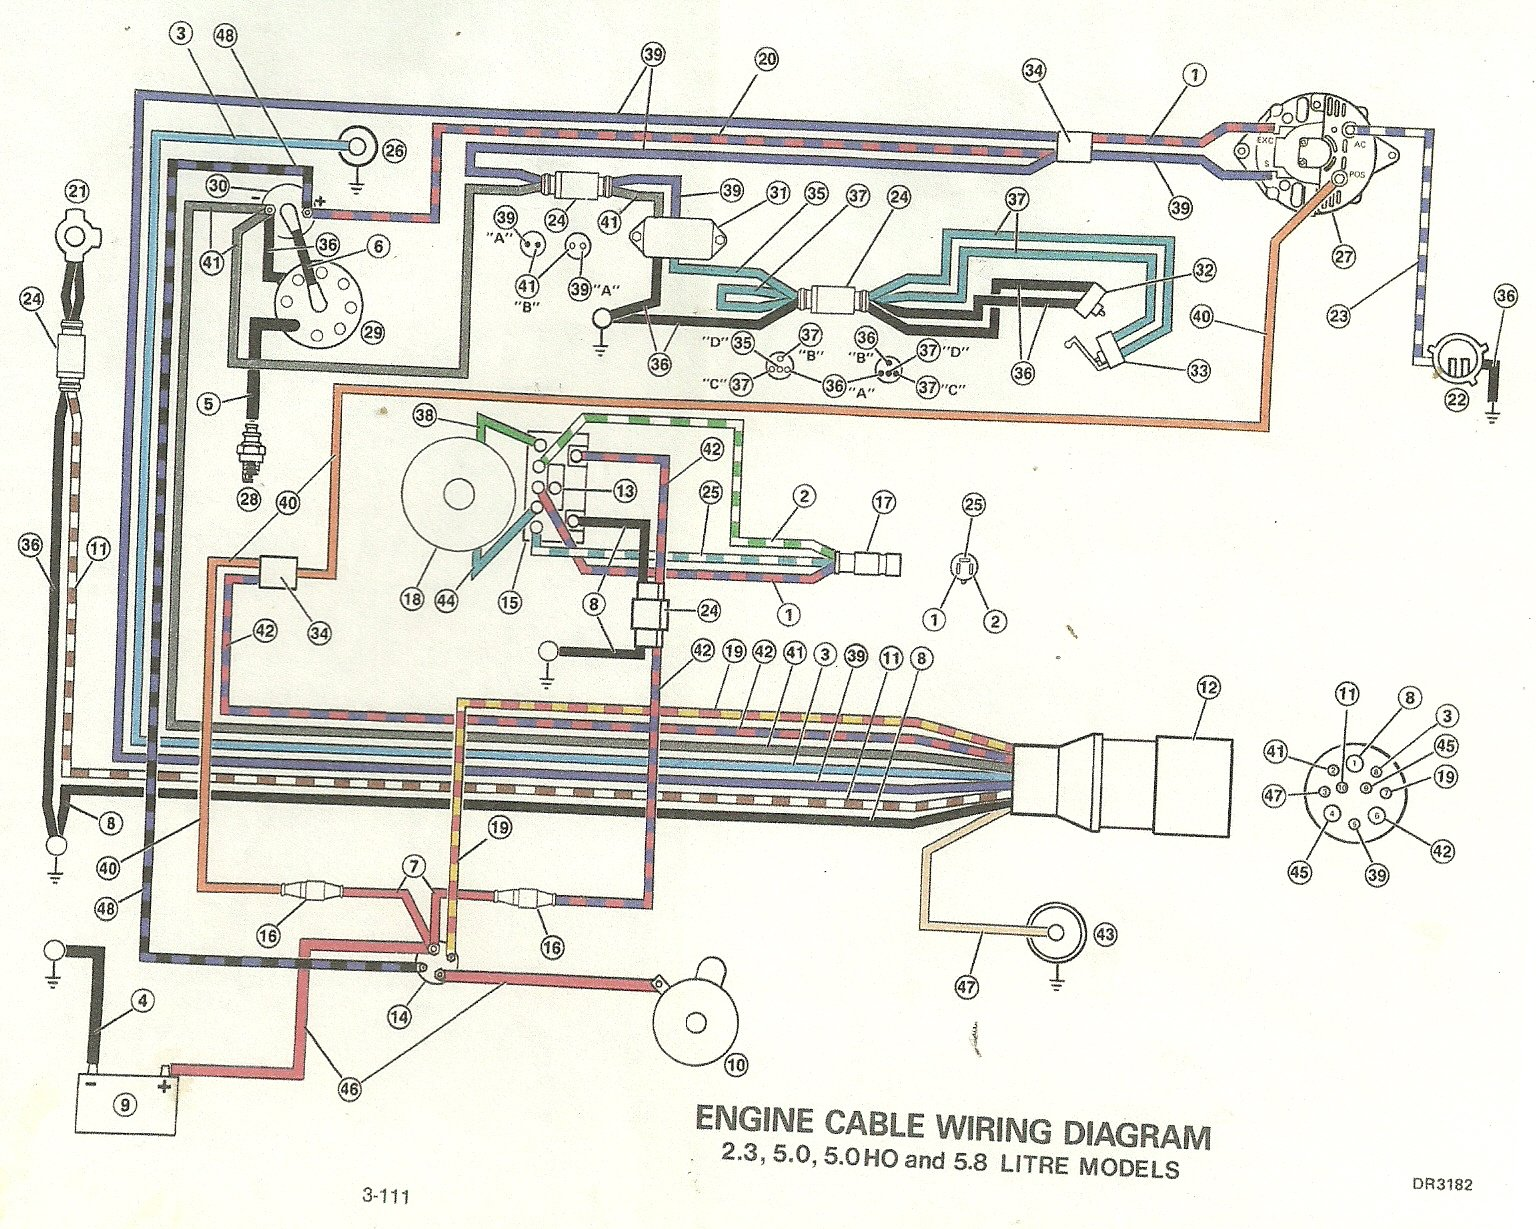 Omc Wiring Diagram - Wiring Diagram Verified on